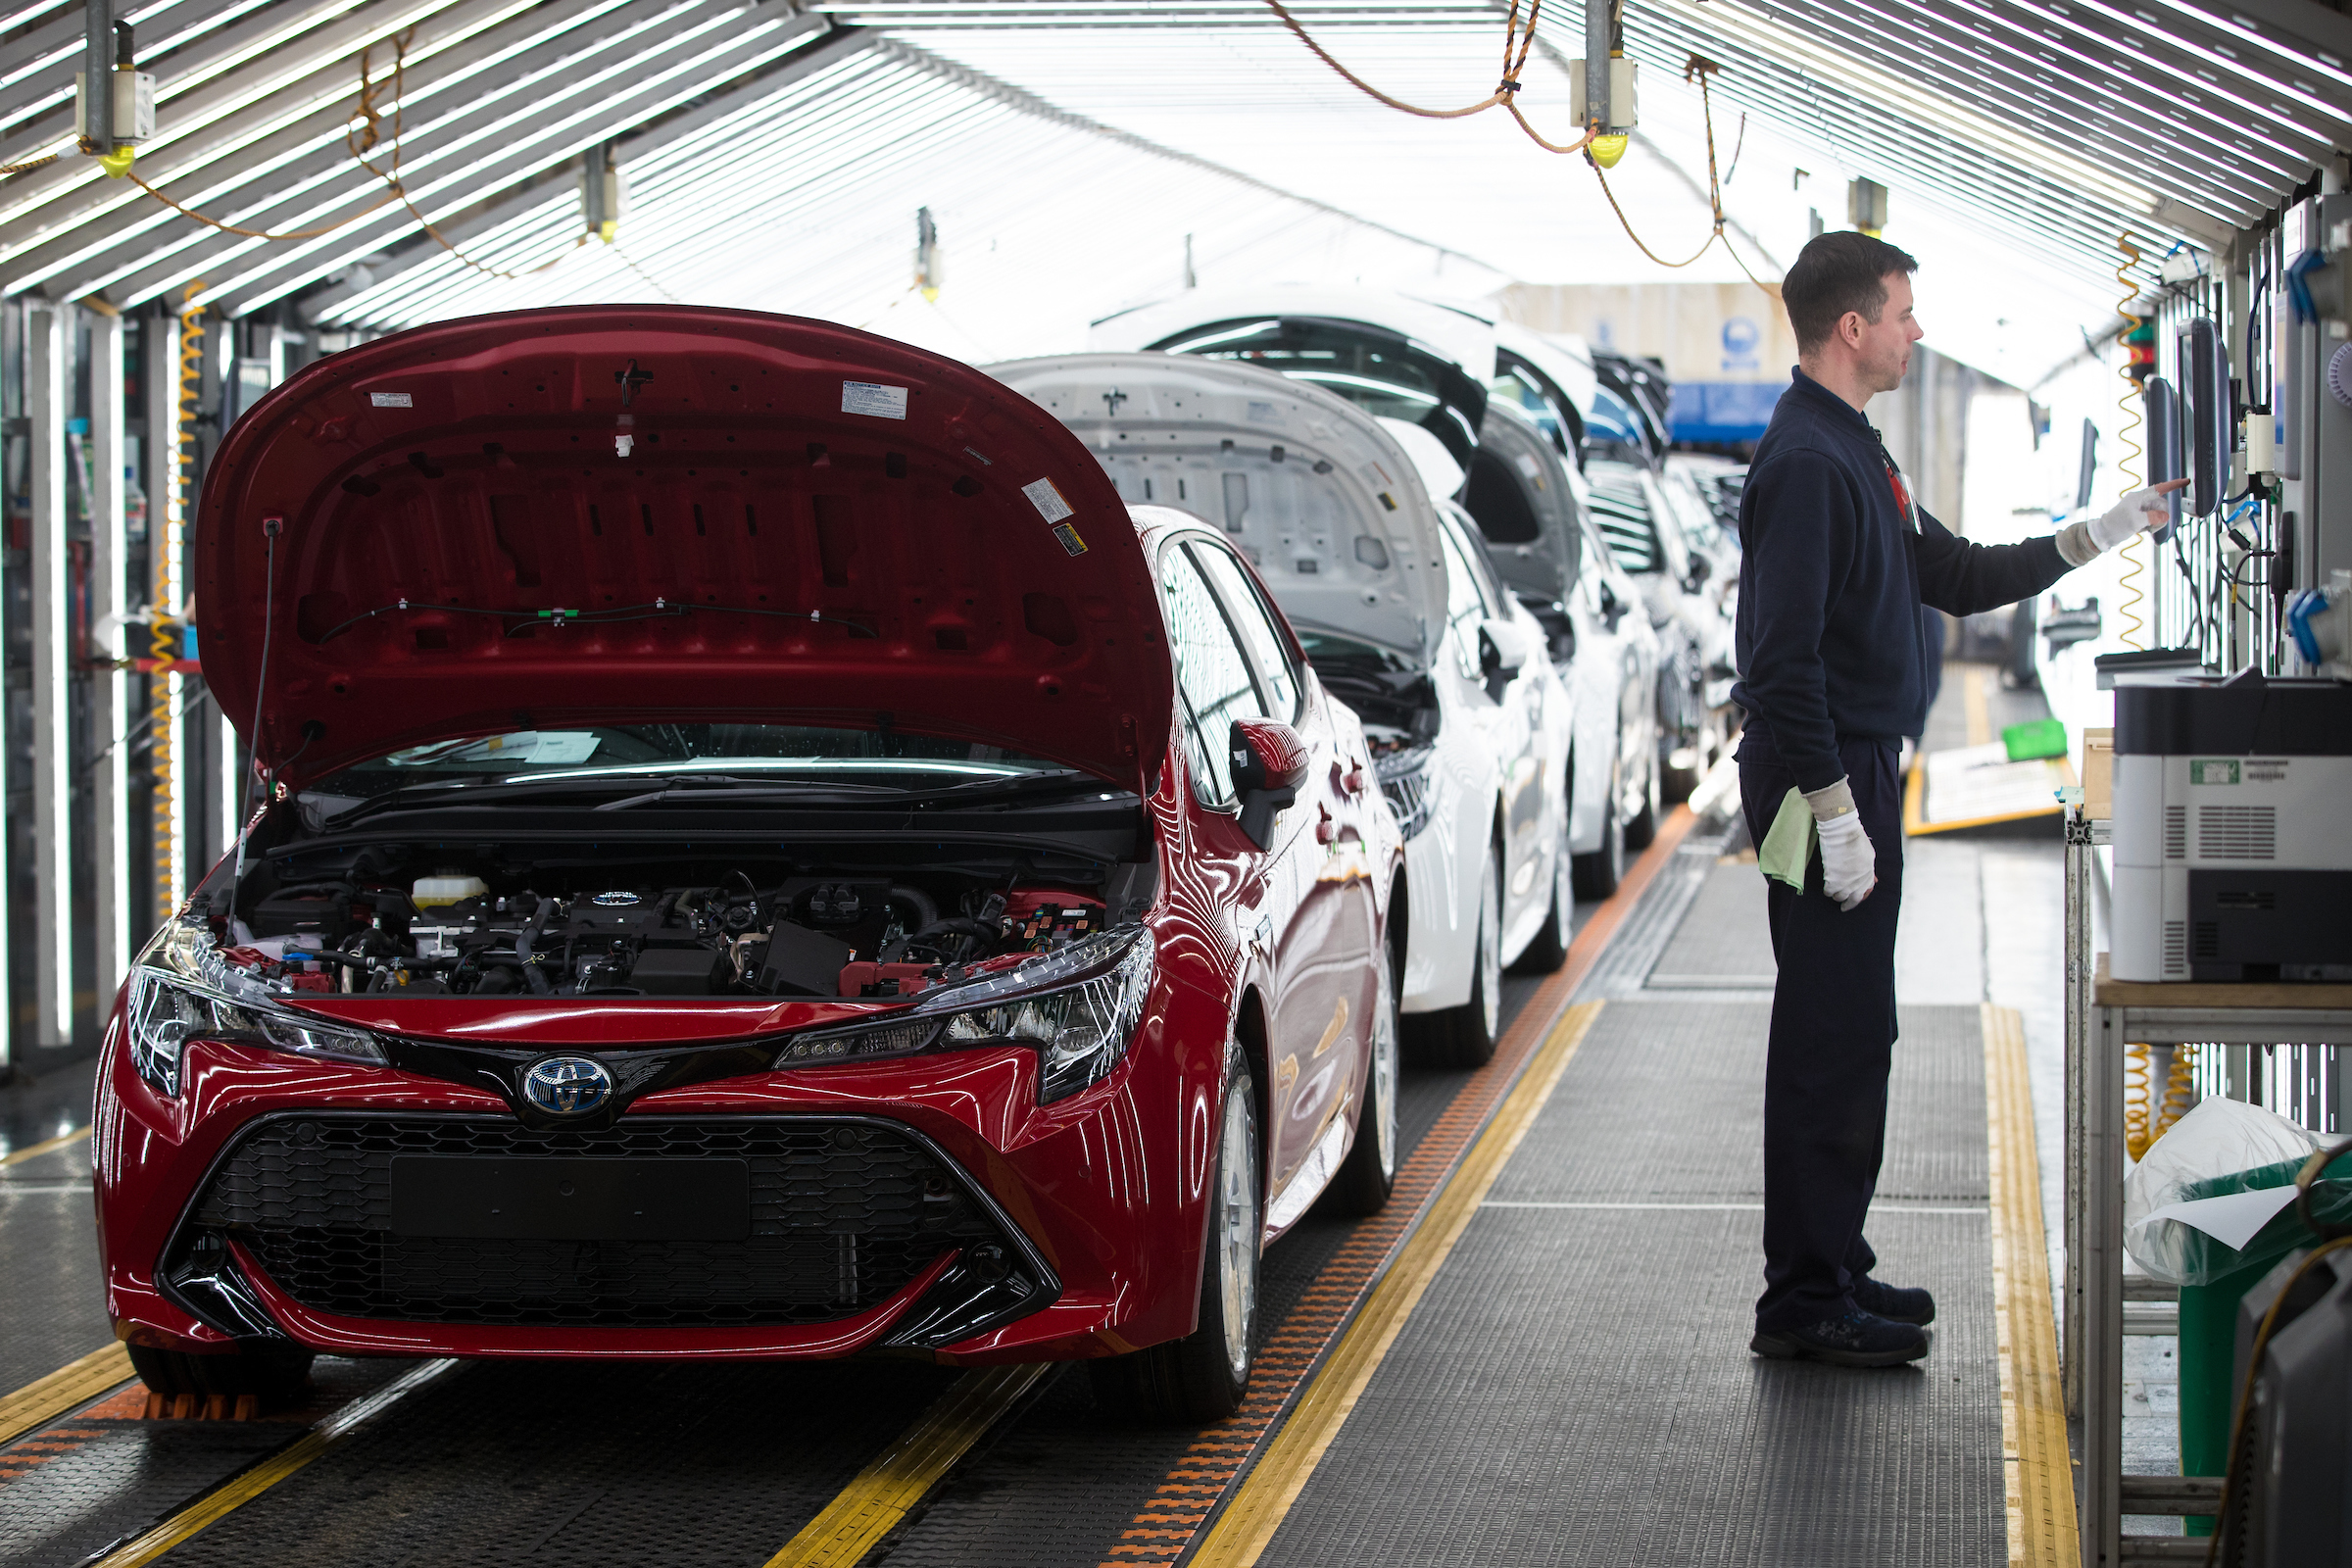 31/01/19  ***Free Photo for Editorial Use***  Toyota Corolla production at Burnaston, Derbyshire.  All Rights Reserved, F Stop Press Ltd.  (0)7765 242650  www.fstoppress.com rod@fstoppress.com